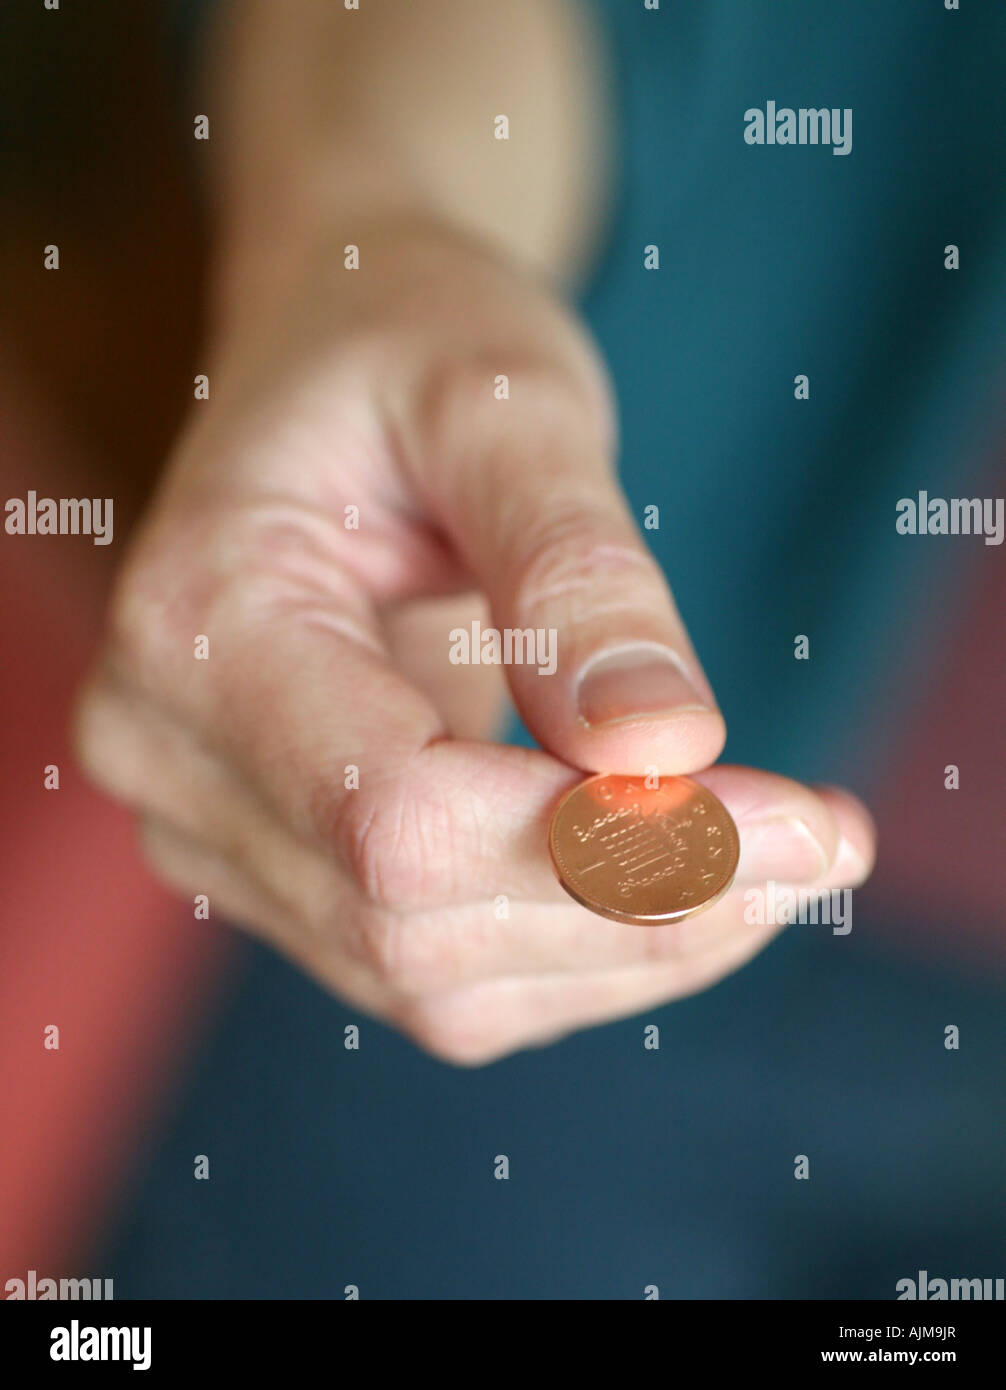 giving 1p coin - Stock Image